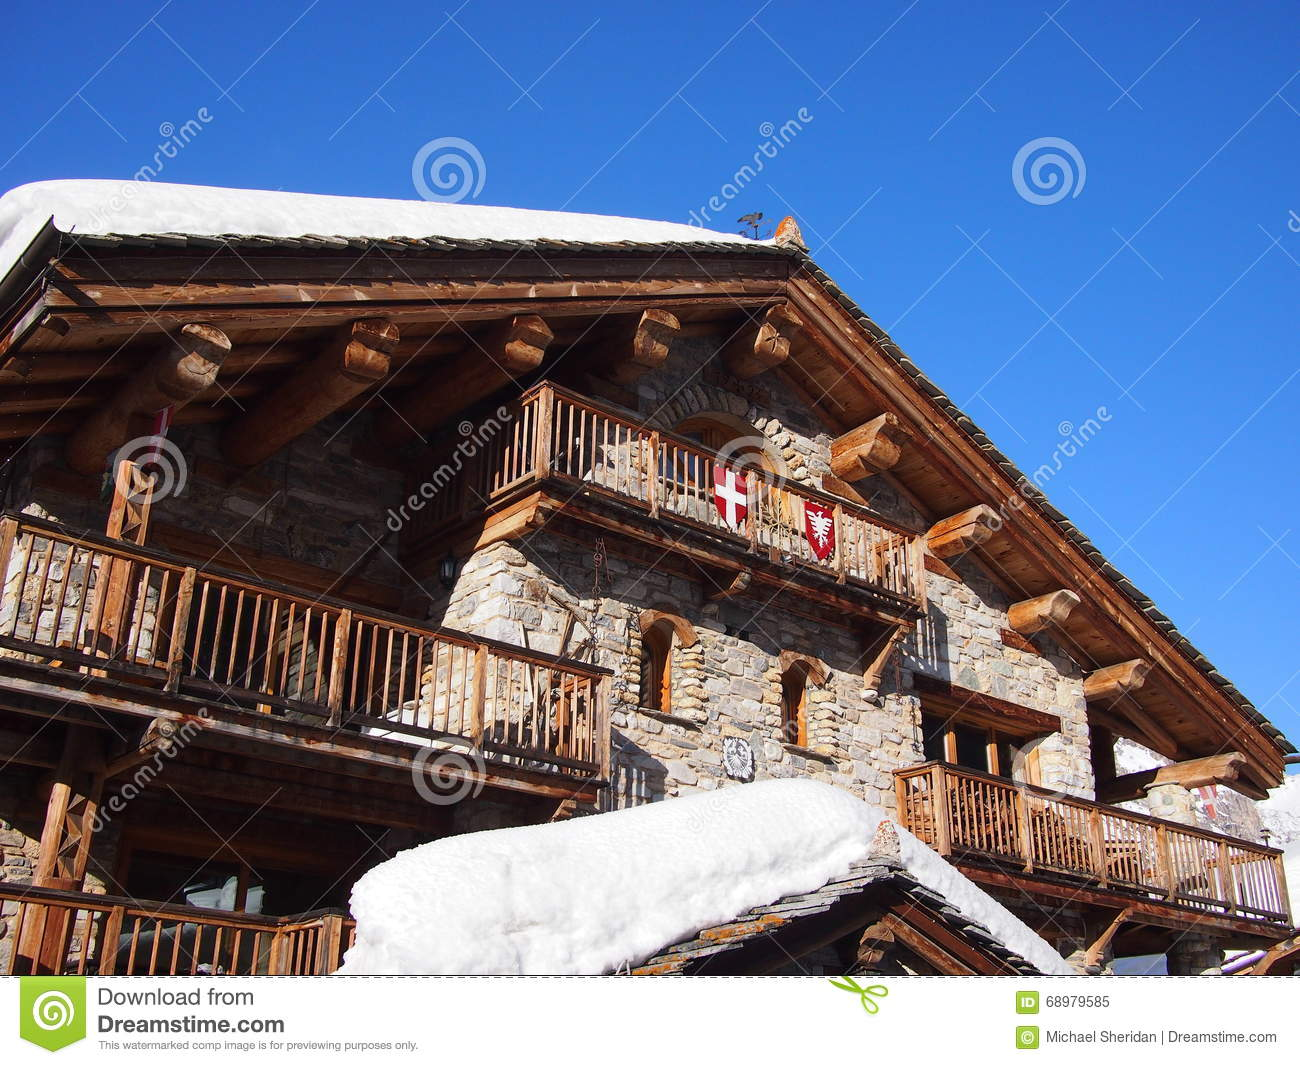 Ski Chalet alpin traditionnel